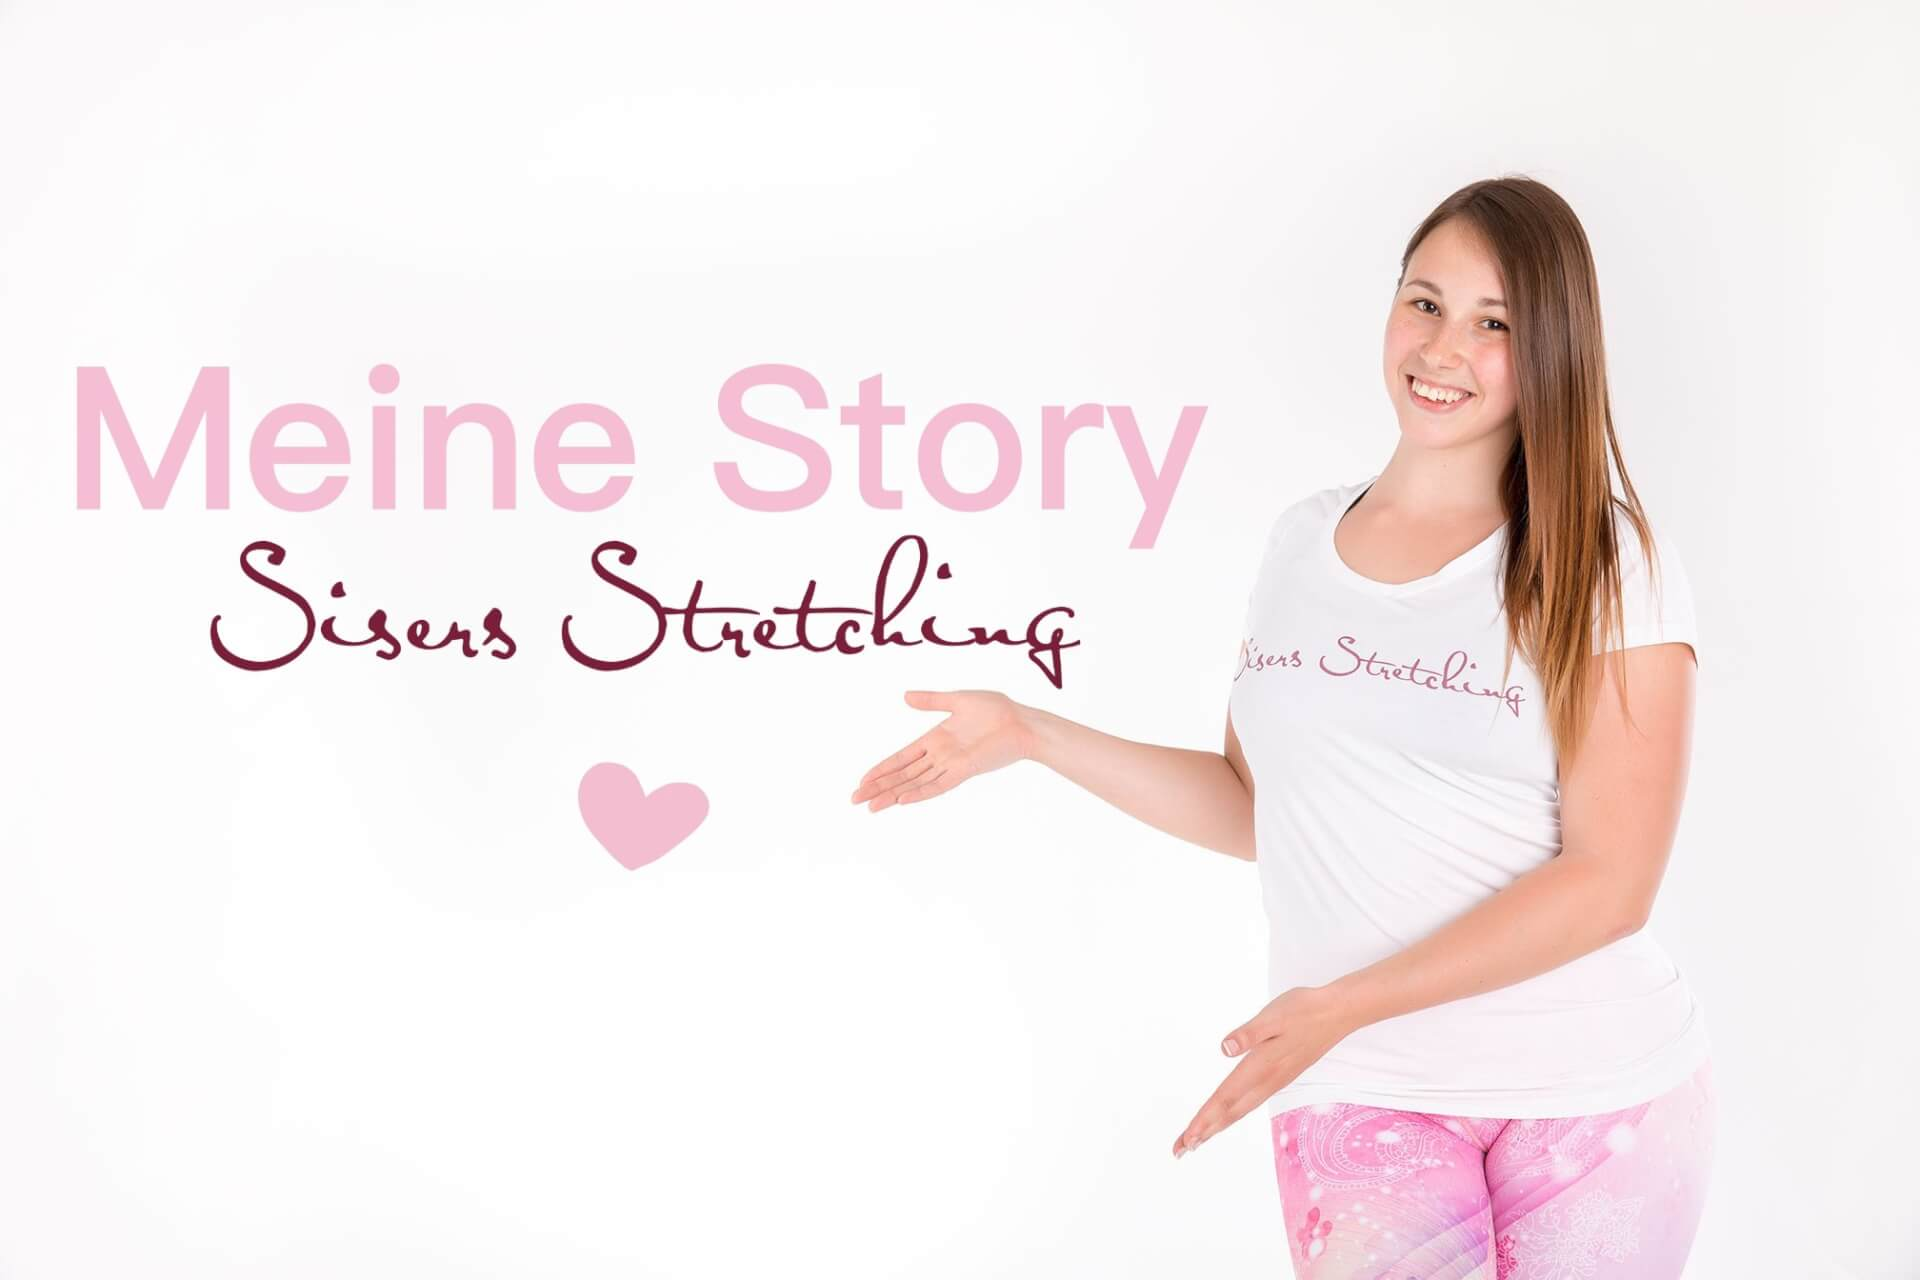 Sisers Stretching - Meine Story